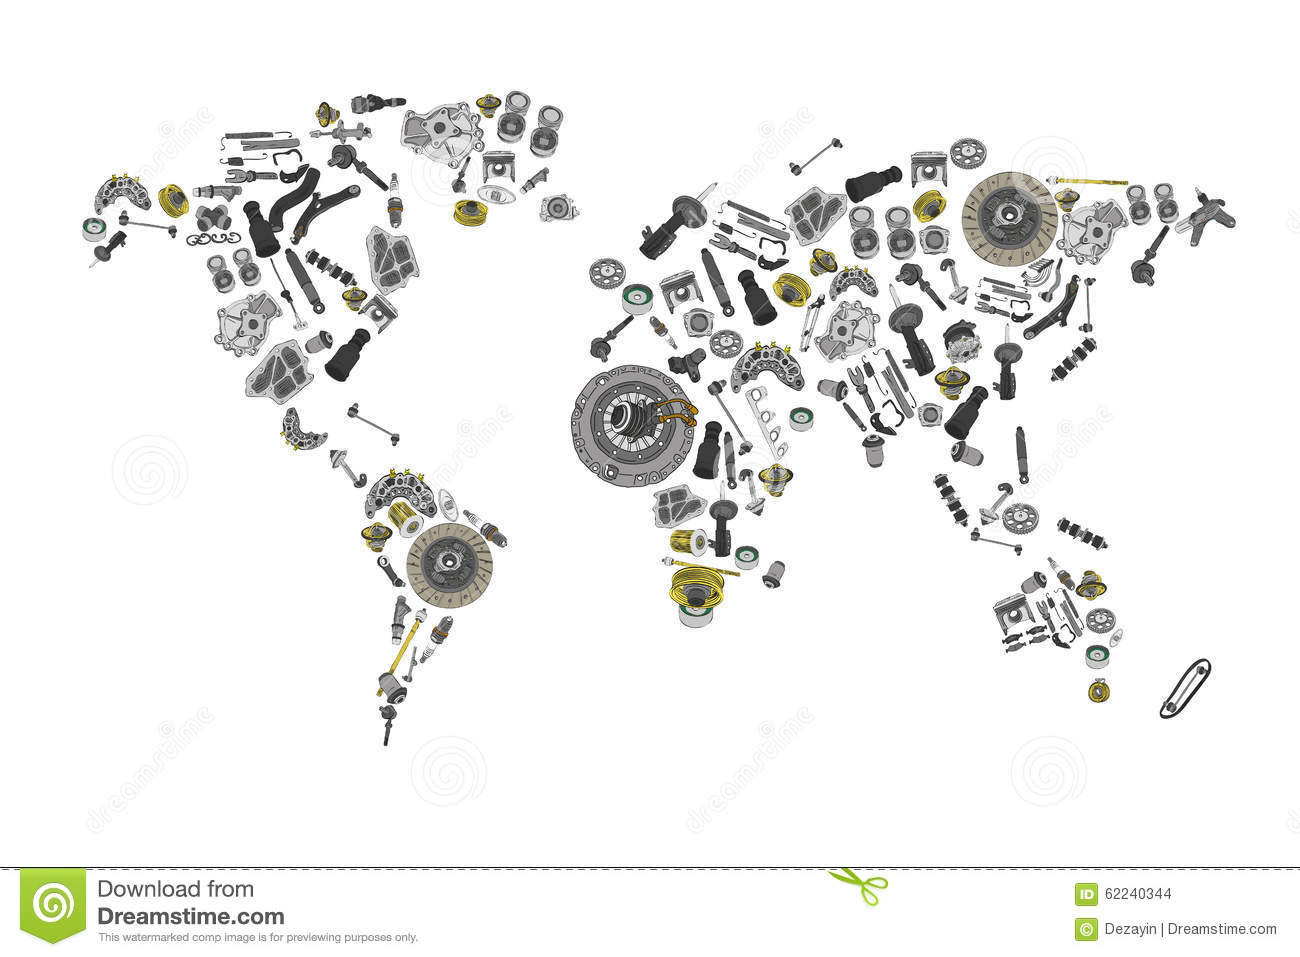 Draw A Map Of The World Made Up Of Spare Parts Stock Vector